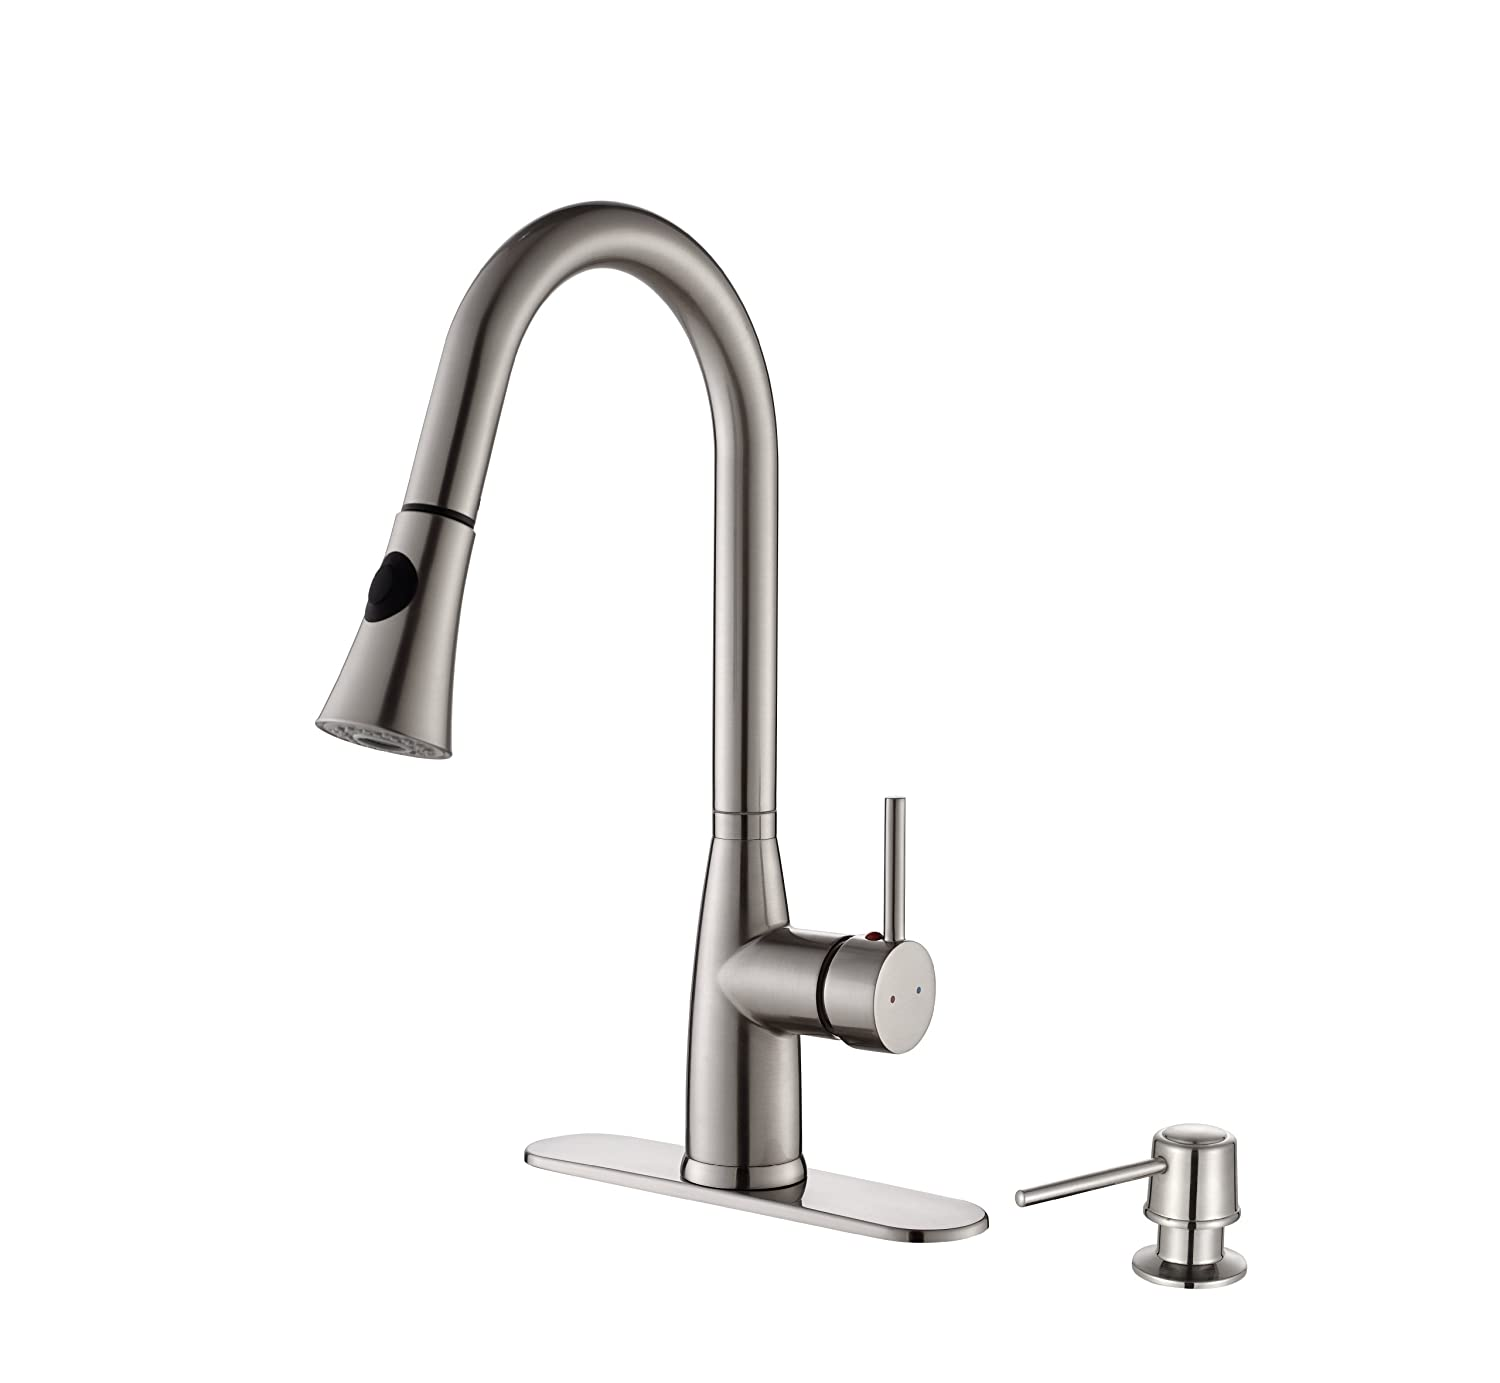 stainless pull best kpf reviews at top steel faucet com it see amazon out kraus hub kitchen faucets